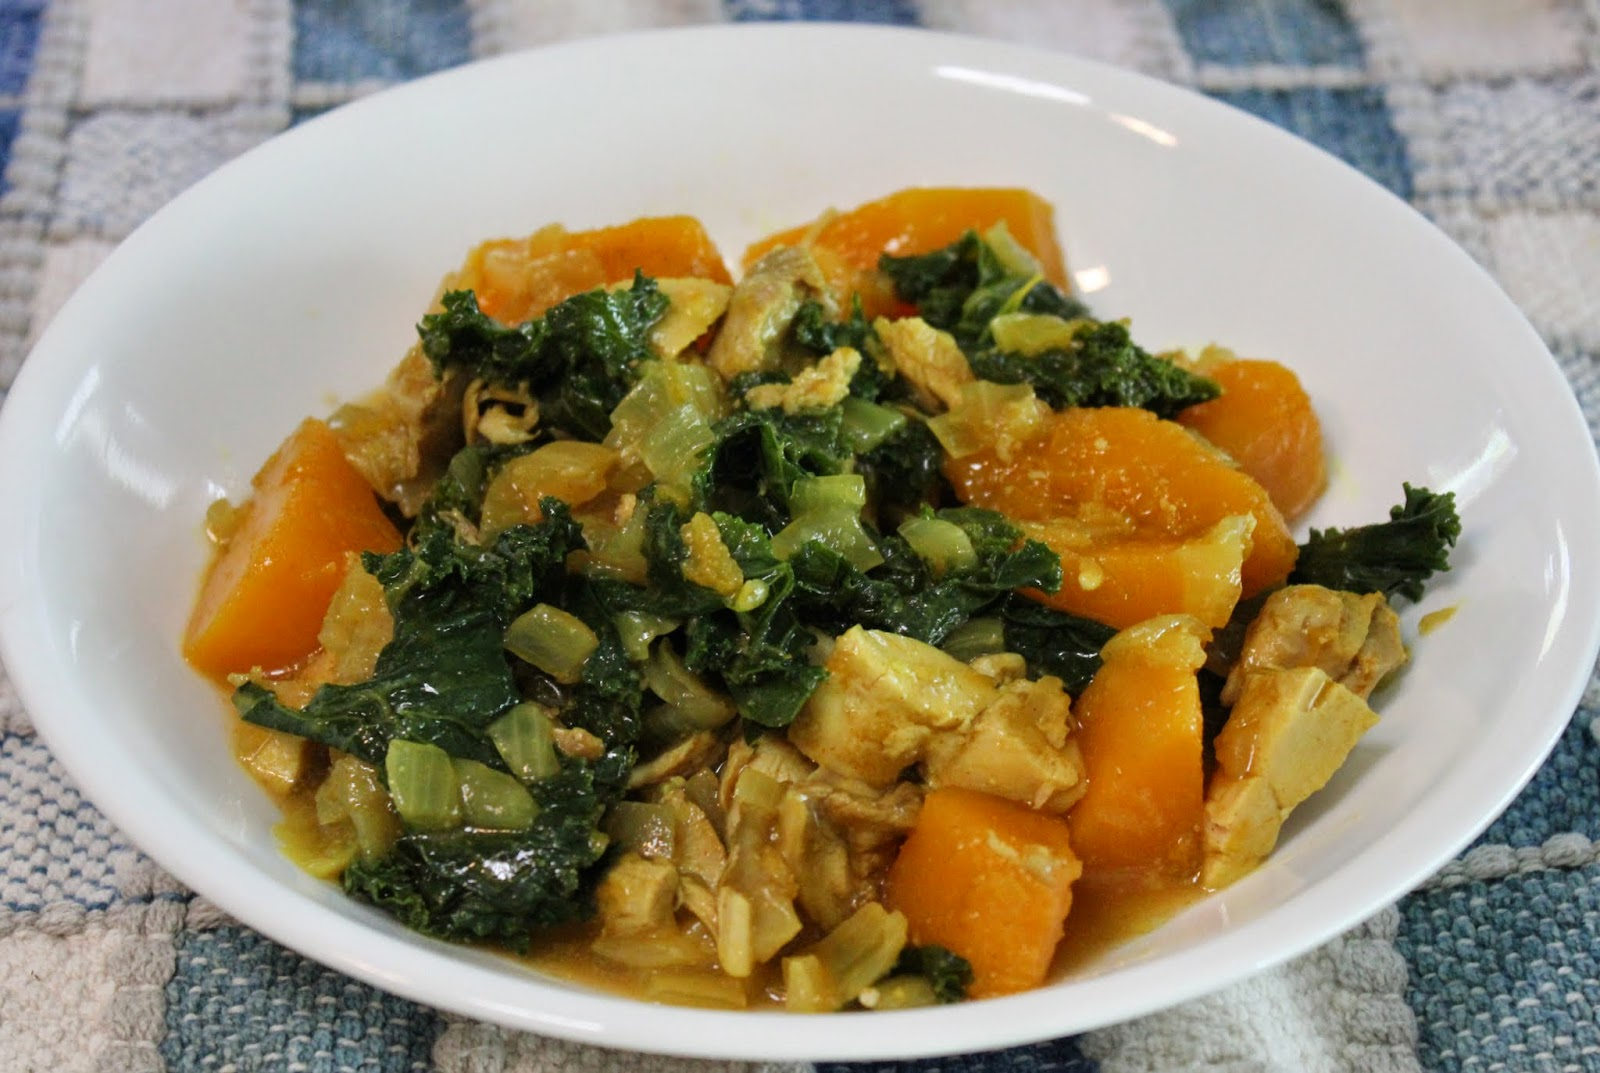 chicken with squash and kale